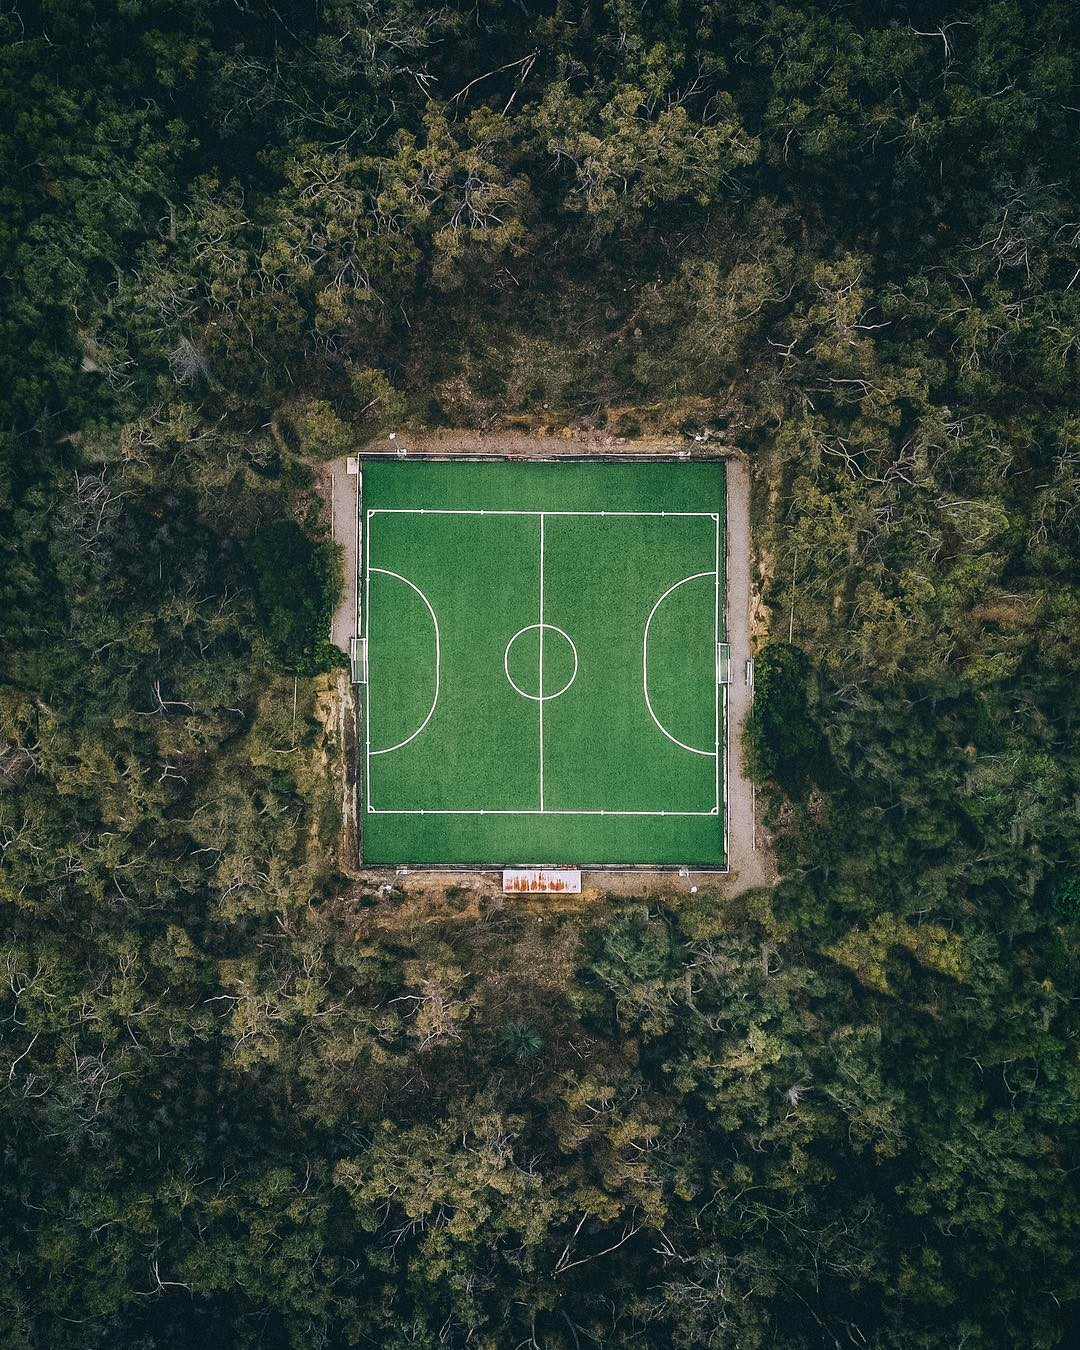 A hockey court in Adelaide, Australia surrounded by forest on all sides, taken with a DJi Maverick drone.